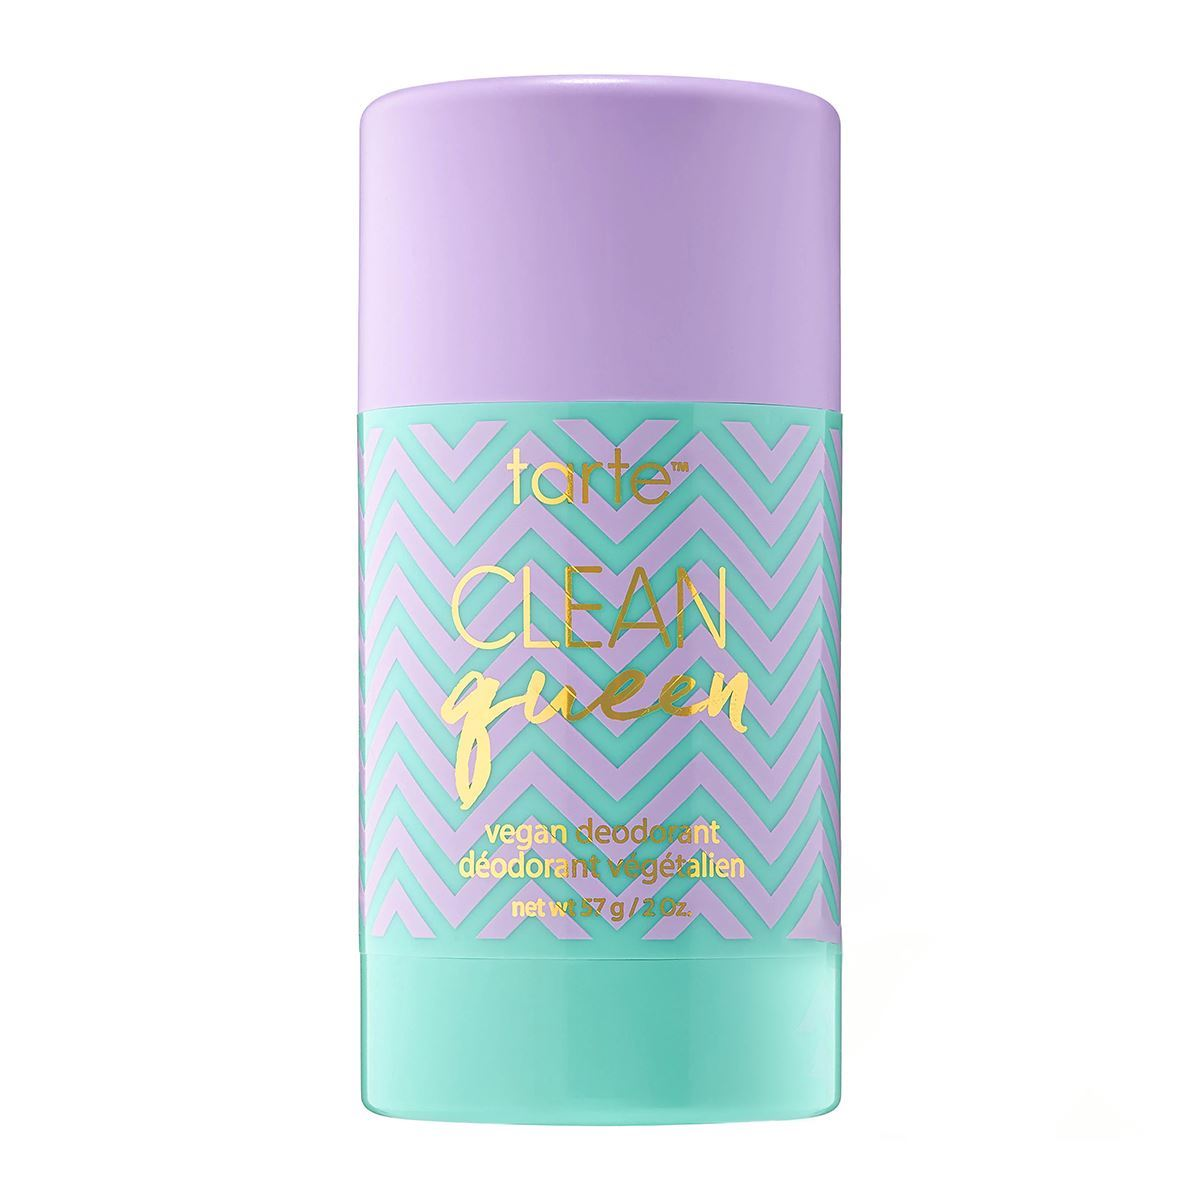 Picture of Tarte Clean Green